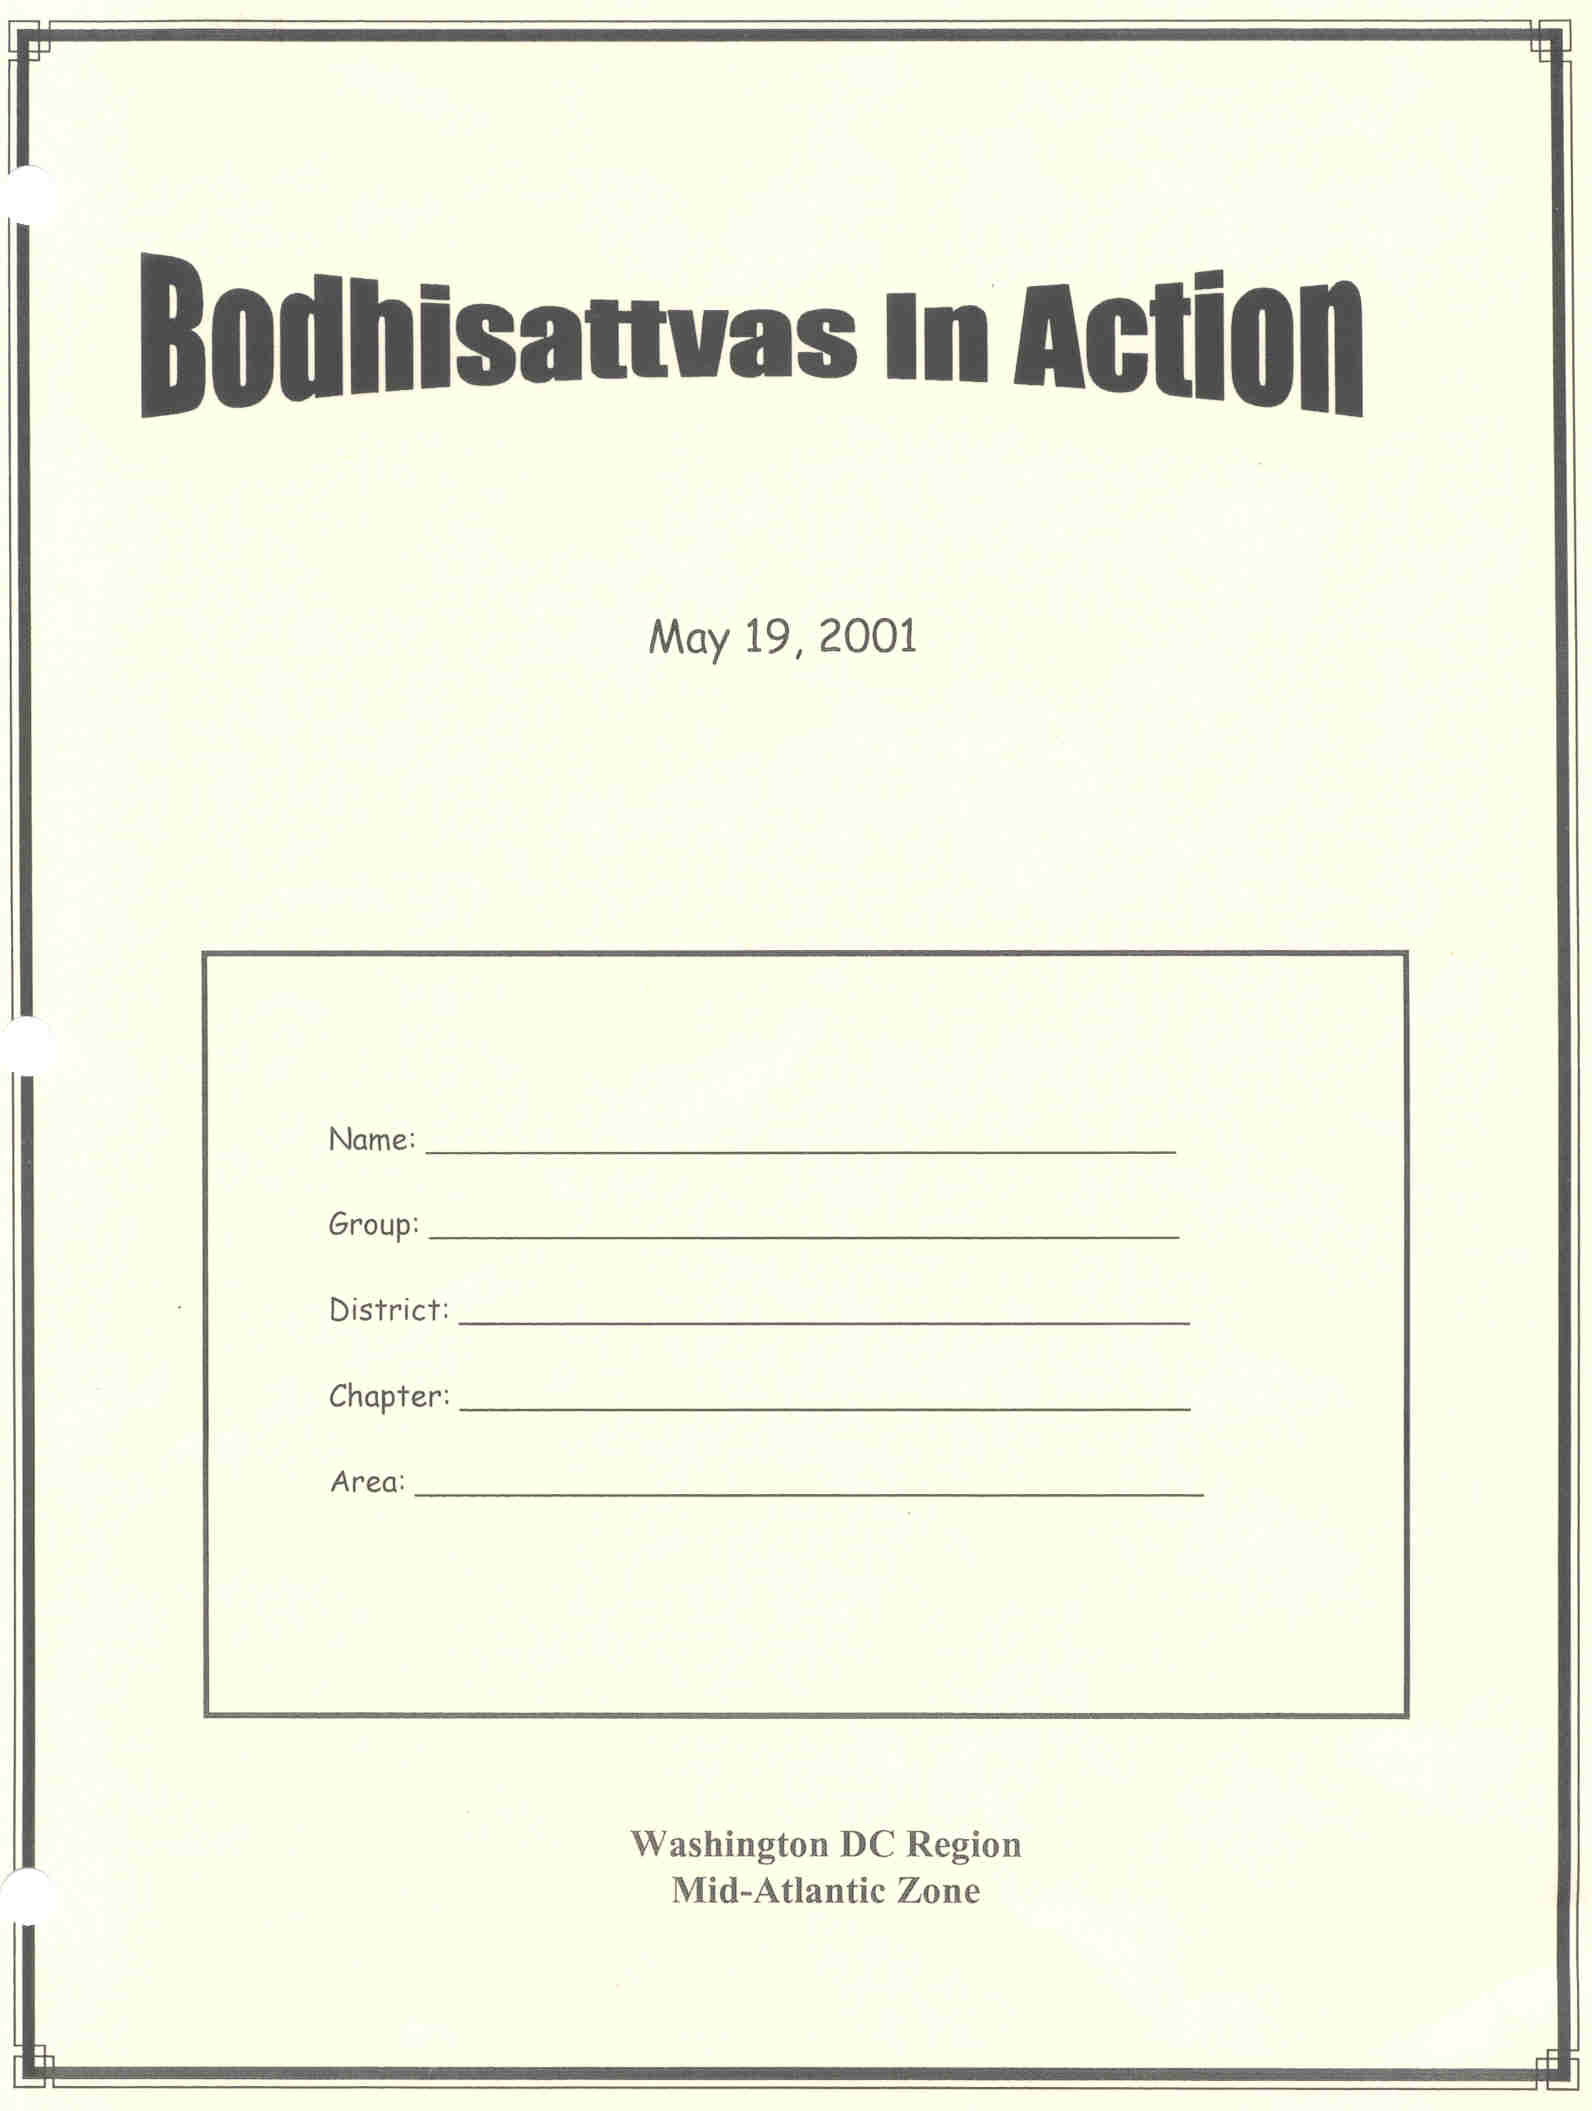 Cover to goto BODIACS text dated 19 May 2001